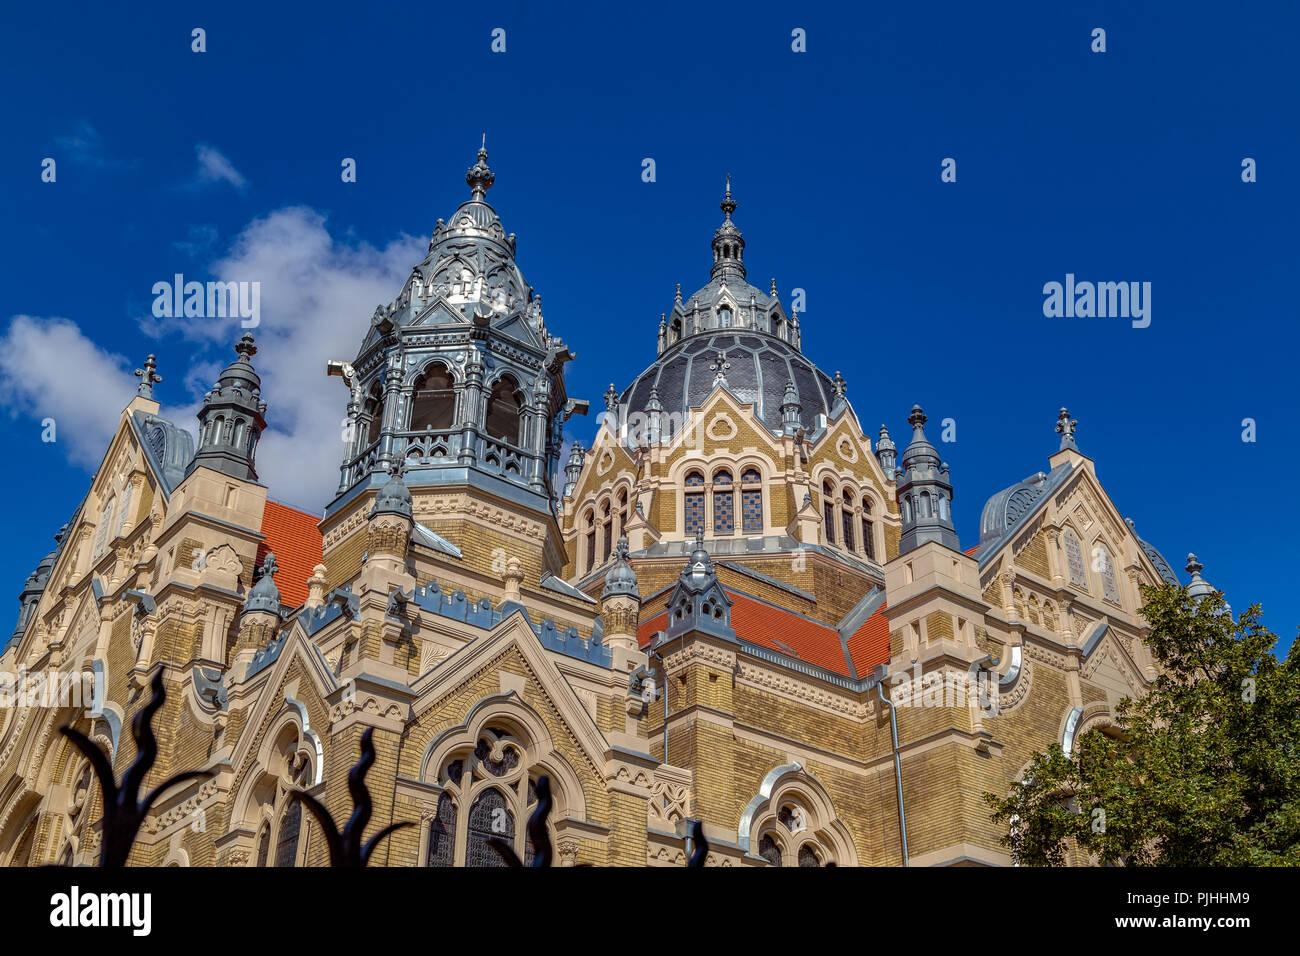 The synagogue in Szeged,Hungary,in 2017 renovated building on a sunny summer afternoon.Hungary second,the world fourth largest synagogue. - Stock Image